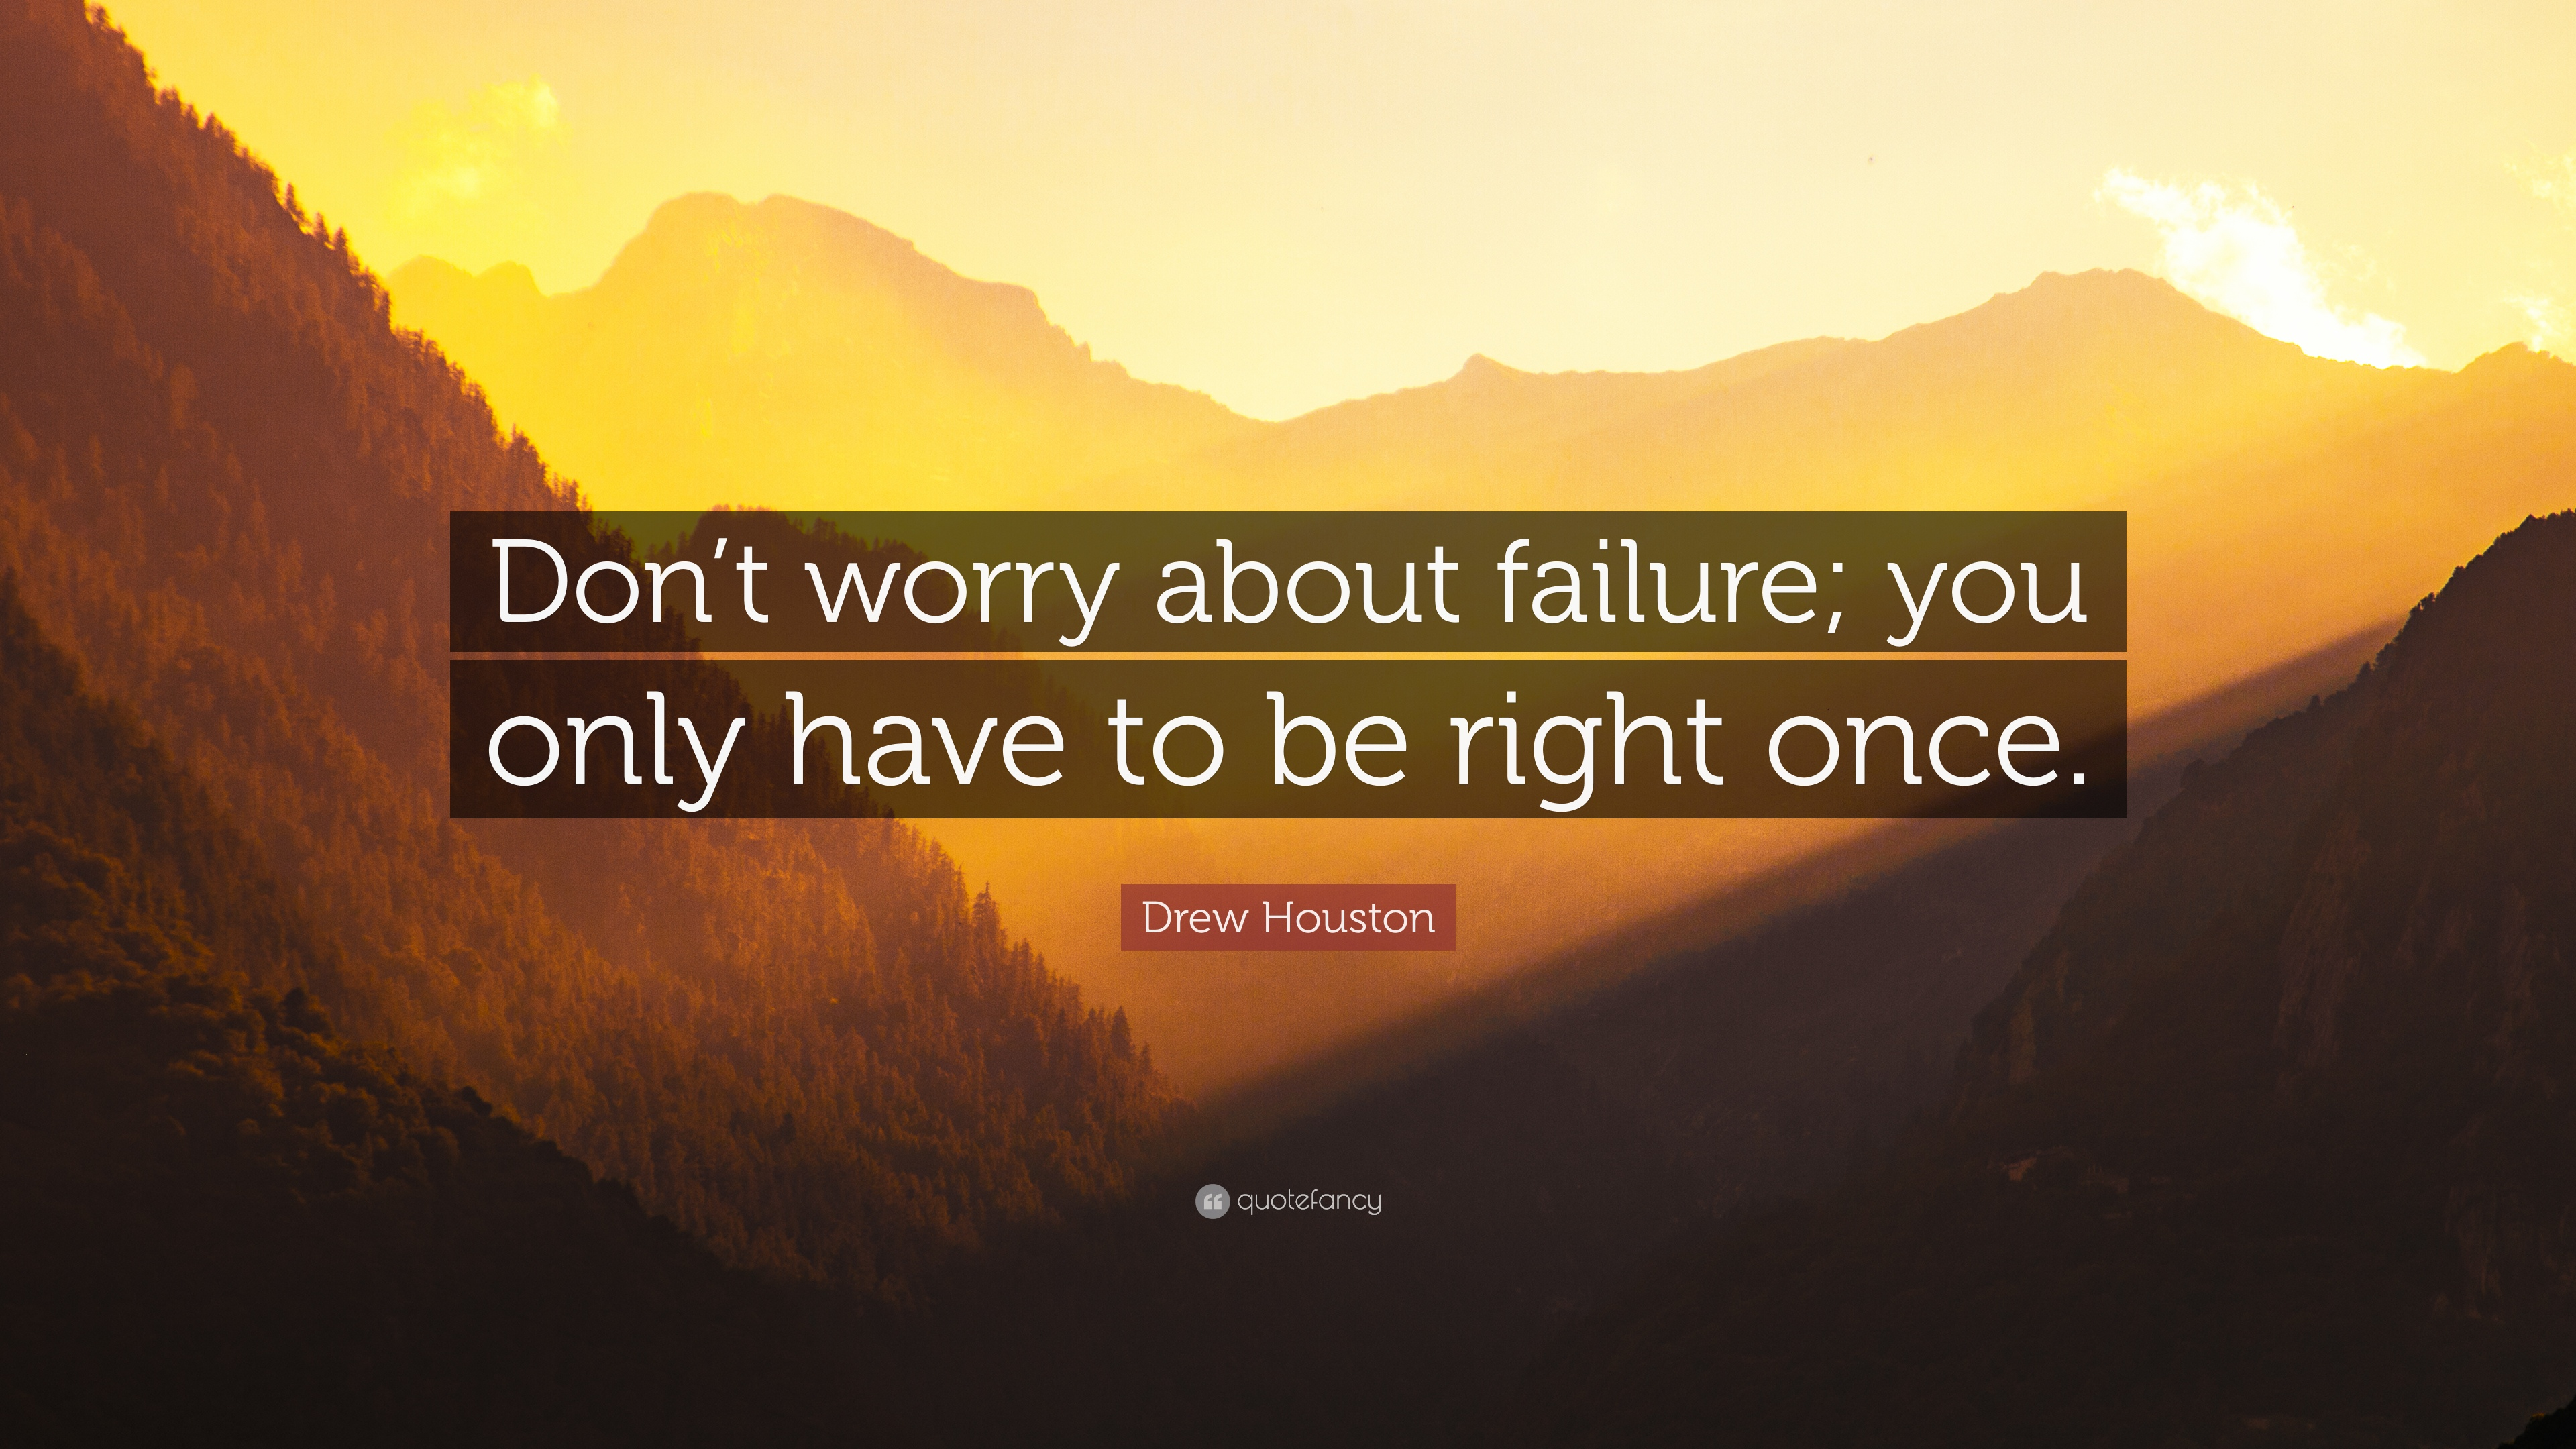 Business Quotes Dont Worry About Failure You Only Have To Be